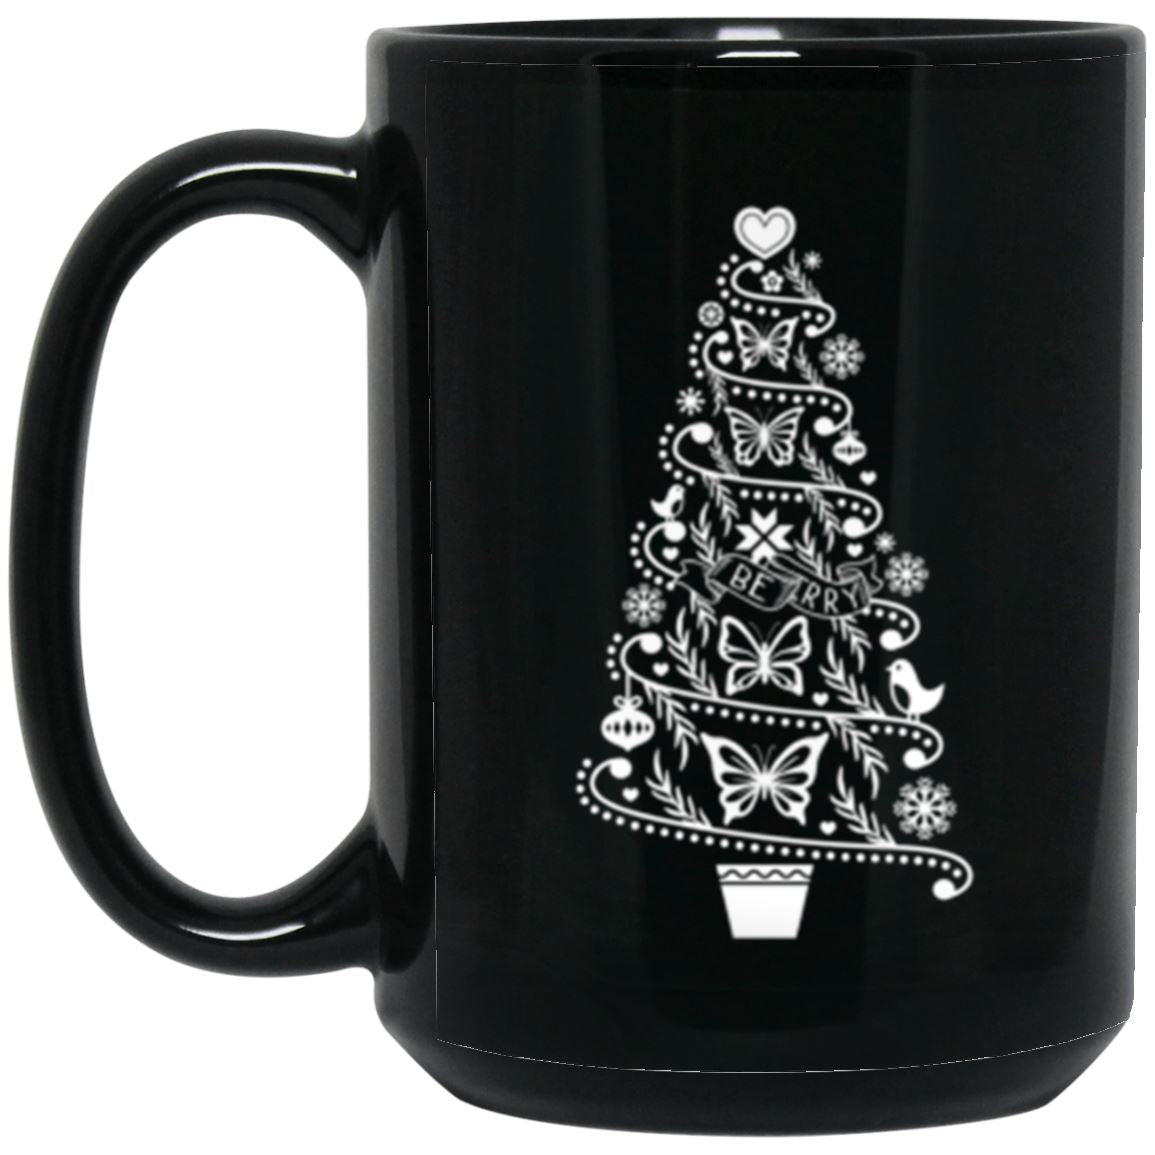 Hygge Christmas Tree Coffee Mug • Cottagecore Cozy Vibes Holiday Mug Drinkware CustomCat 15oz.